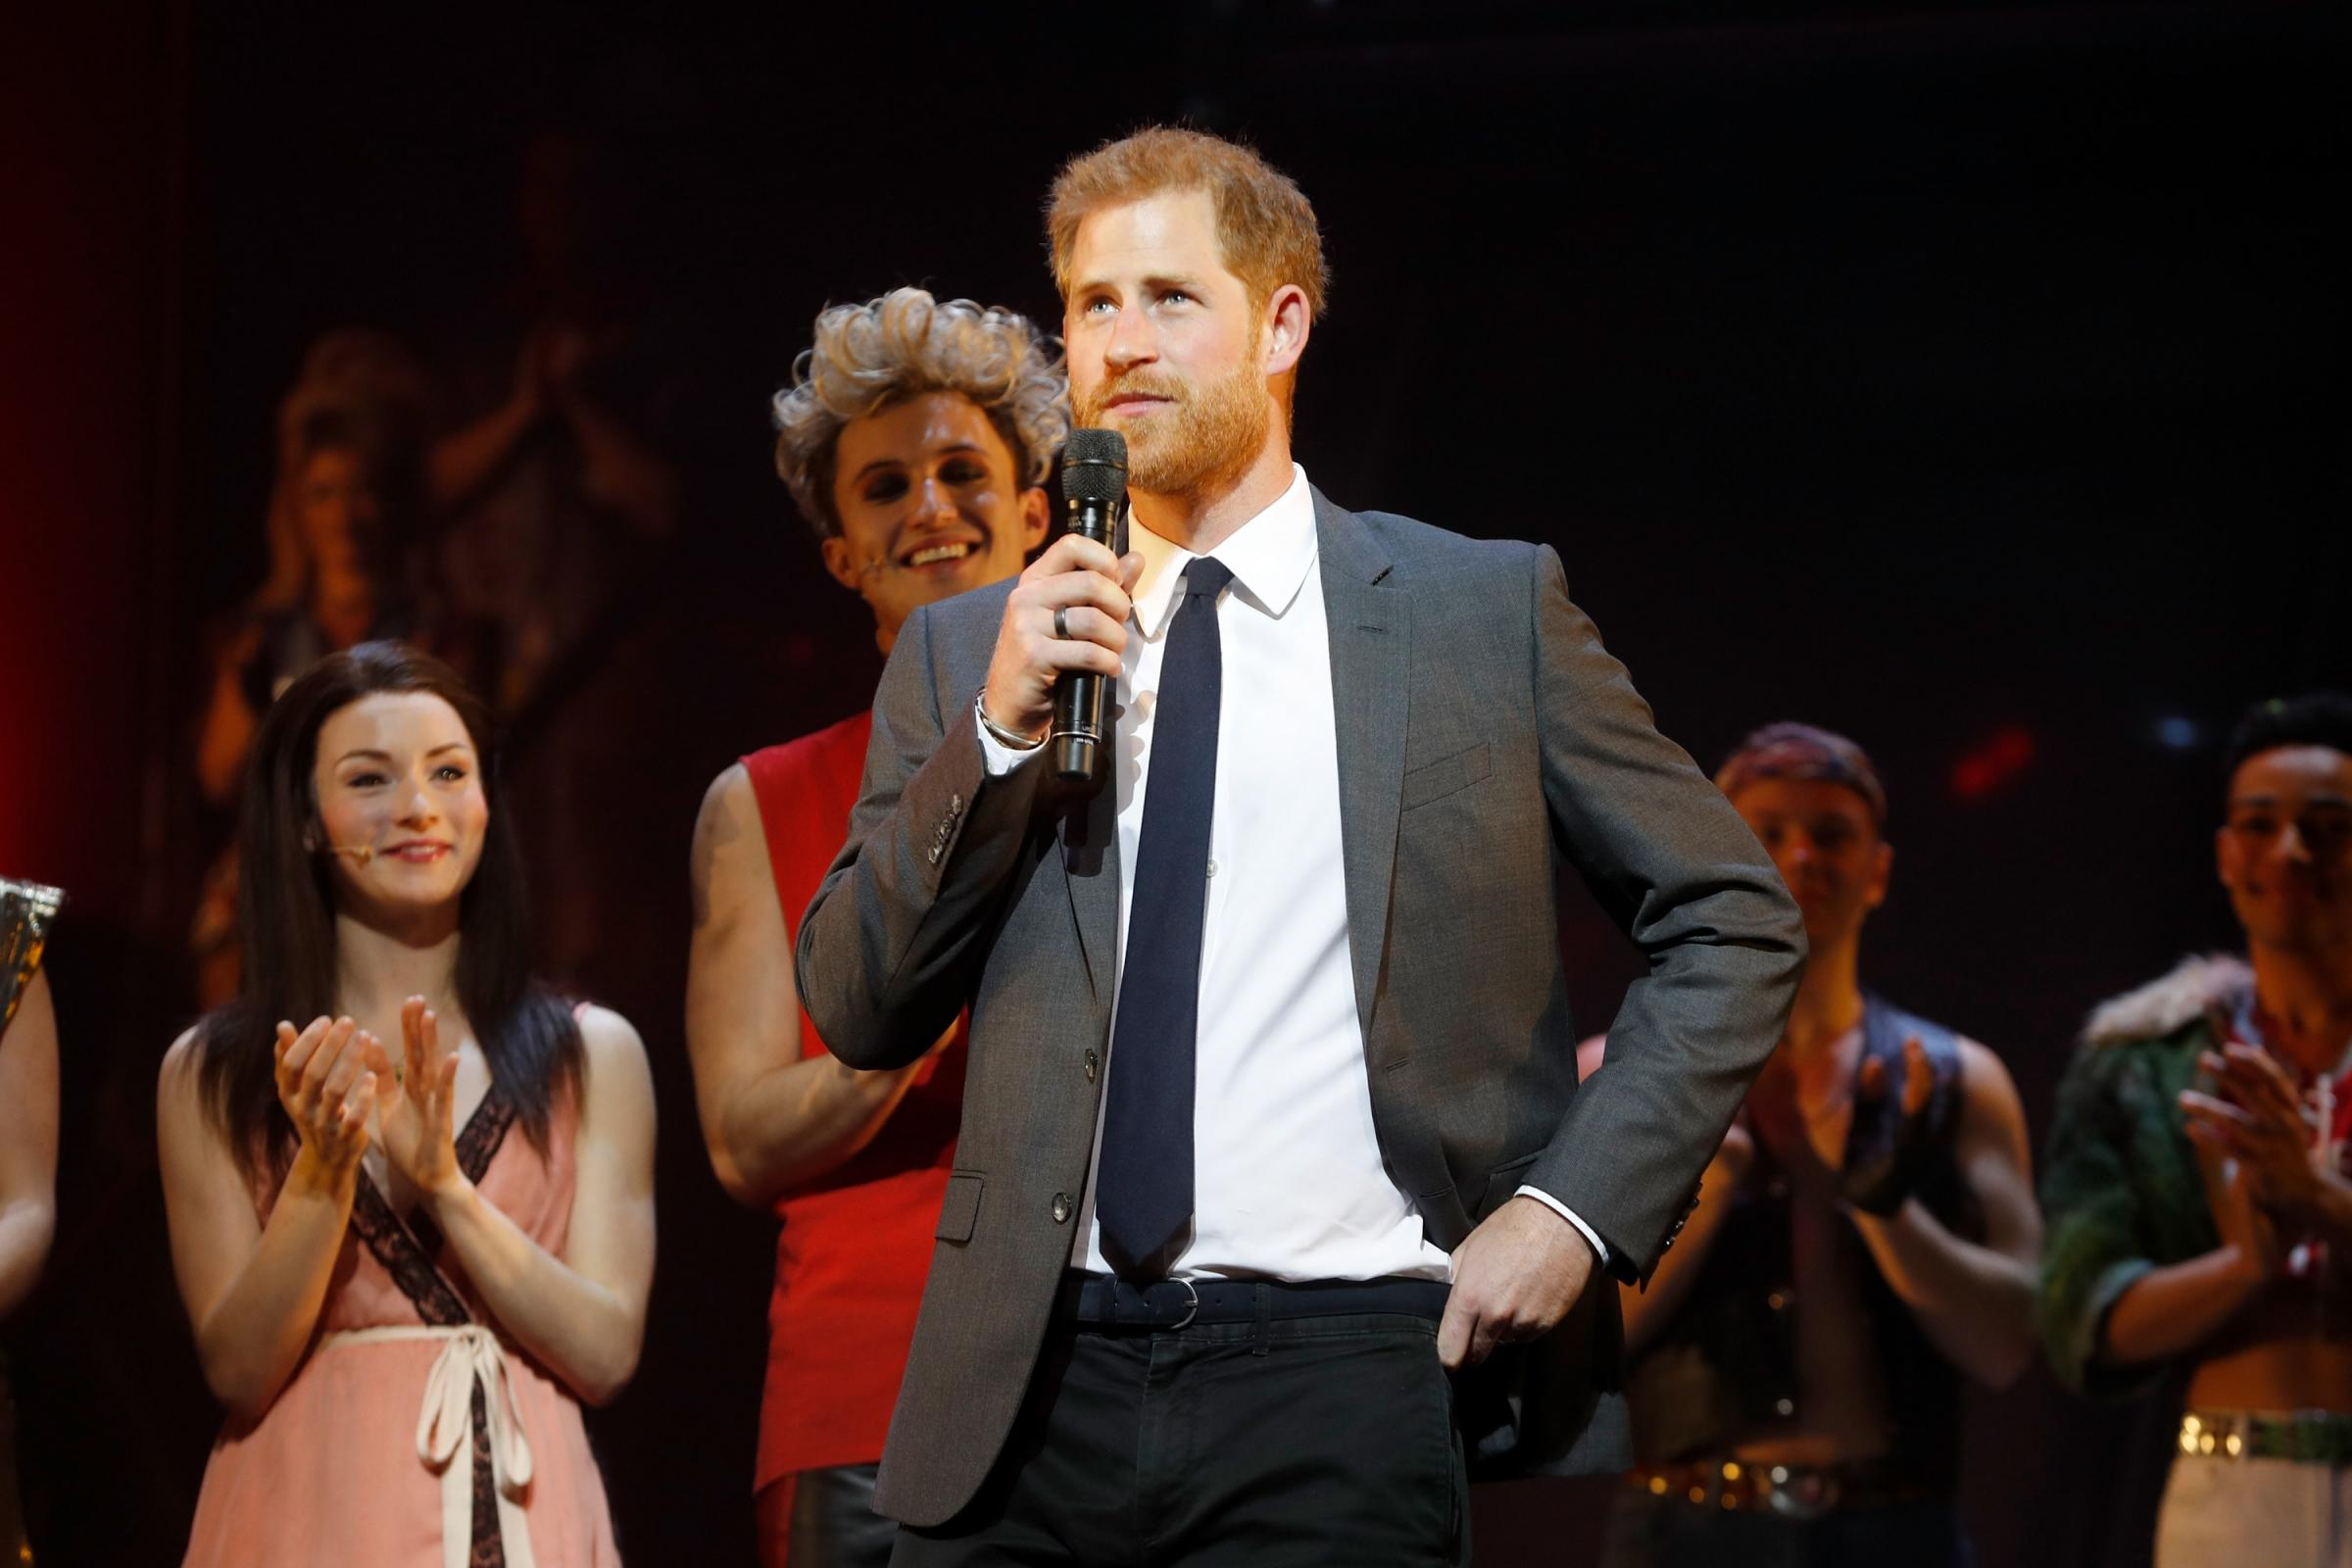 The Duke Of Sussex addresses the audience alongside the show's producer and cast members ahead of a gala performance of Bat Out Of Hell - The Musical, in support of the Invictus Games Foundation at Dominion Theatre, London